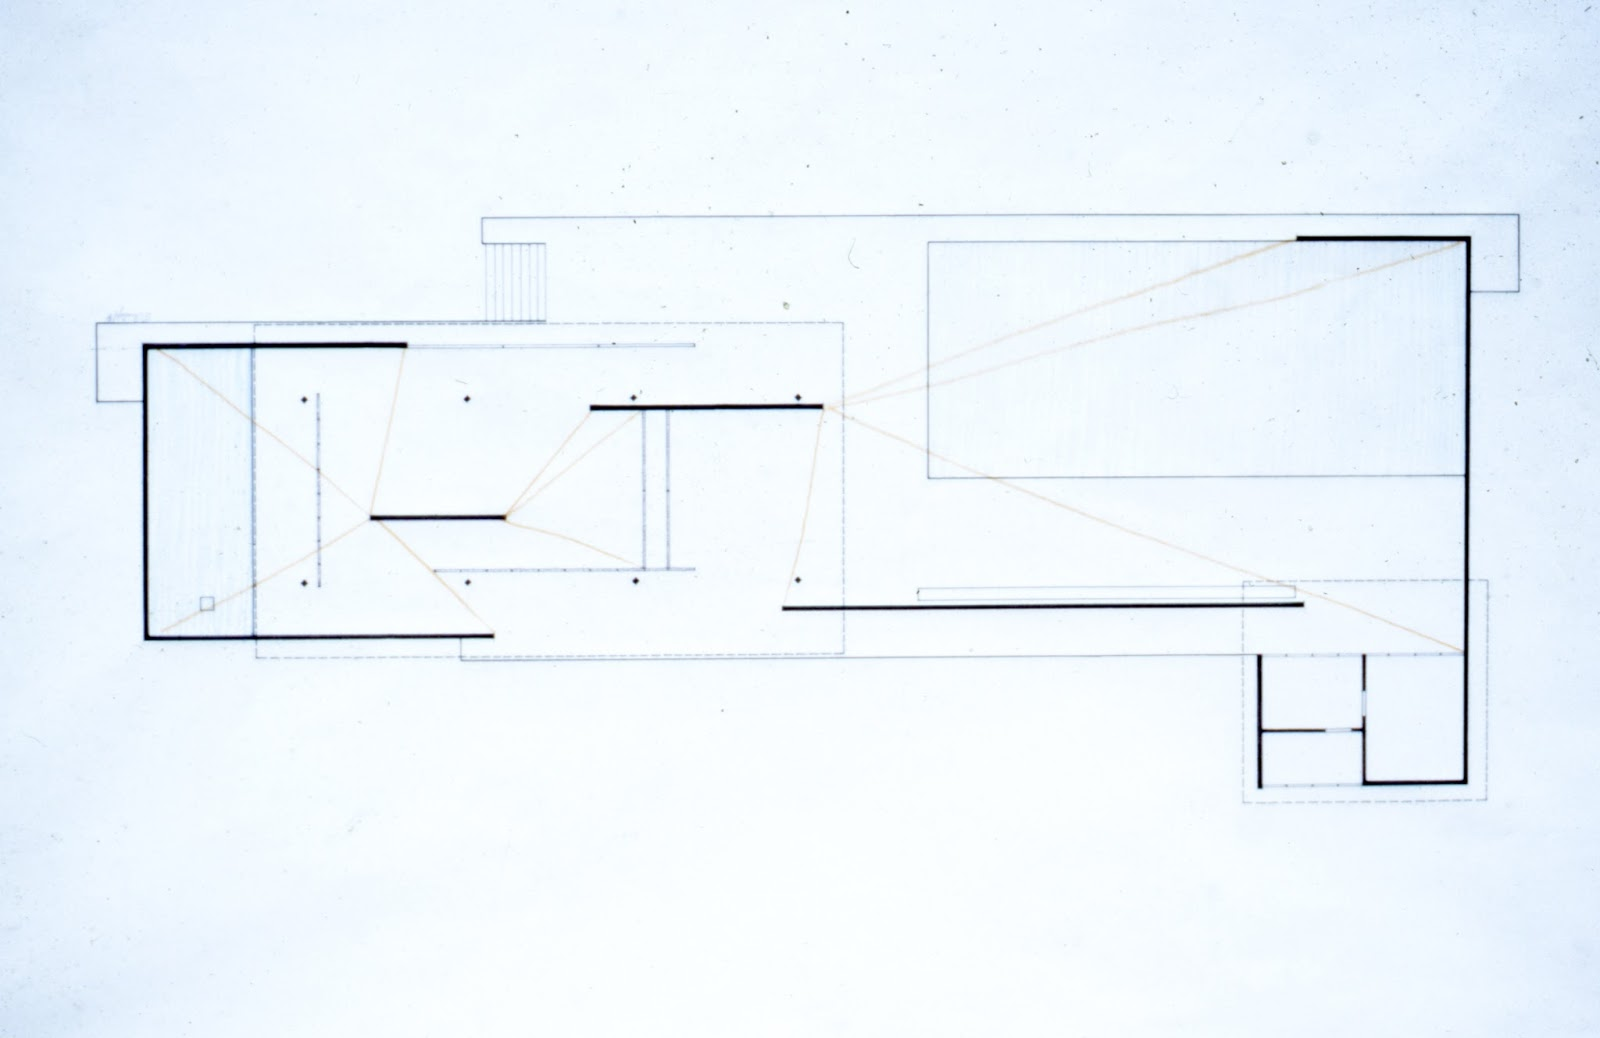 Hidden Architecture » Barcelona Pavilion Study Drawings and ... on p-47 3 view drawings, be mine in graffitti drawings, information drawings, engineering drawings, cartoon drawings, blueprint drawings, rj48x jack panel mount drawings, landscape drawings, technical drawings, stars in space drawings, isometric drawings, passing of the frontier drawings, cool drawings, elevator pit drawings, sr-71 model drawings, orthographic drawings, republic p-47 thunderbolt drawings, switch drawings, cad drawings,